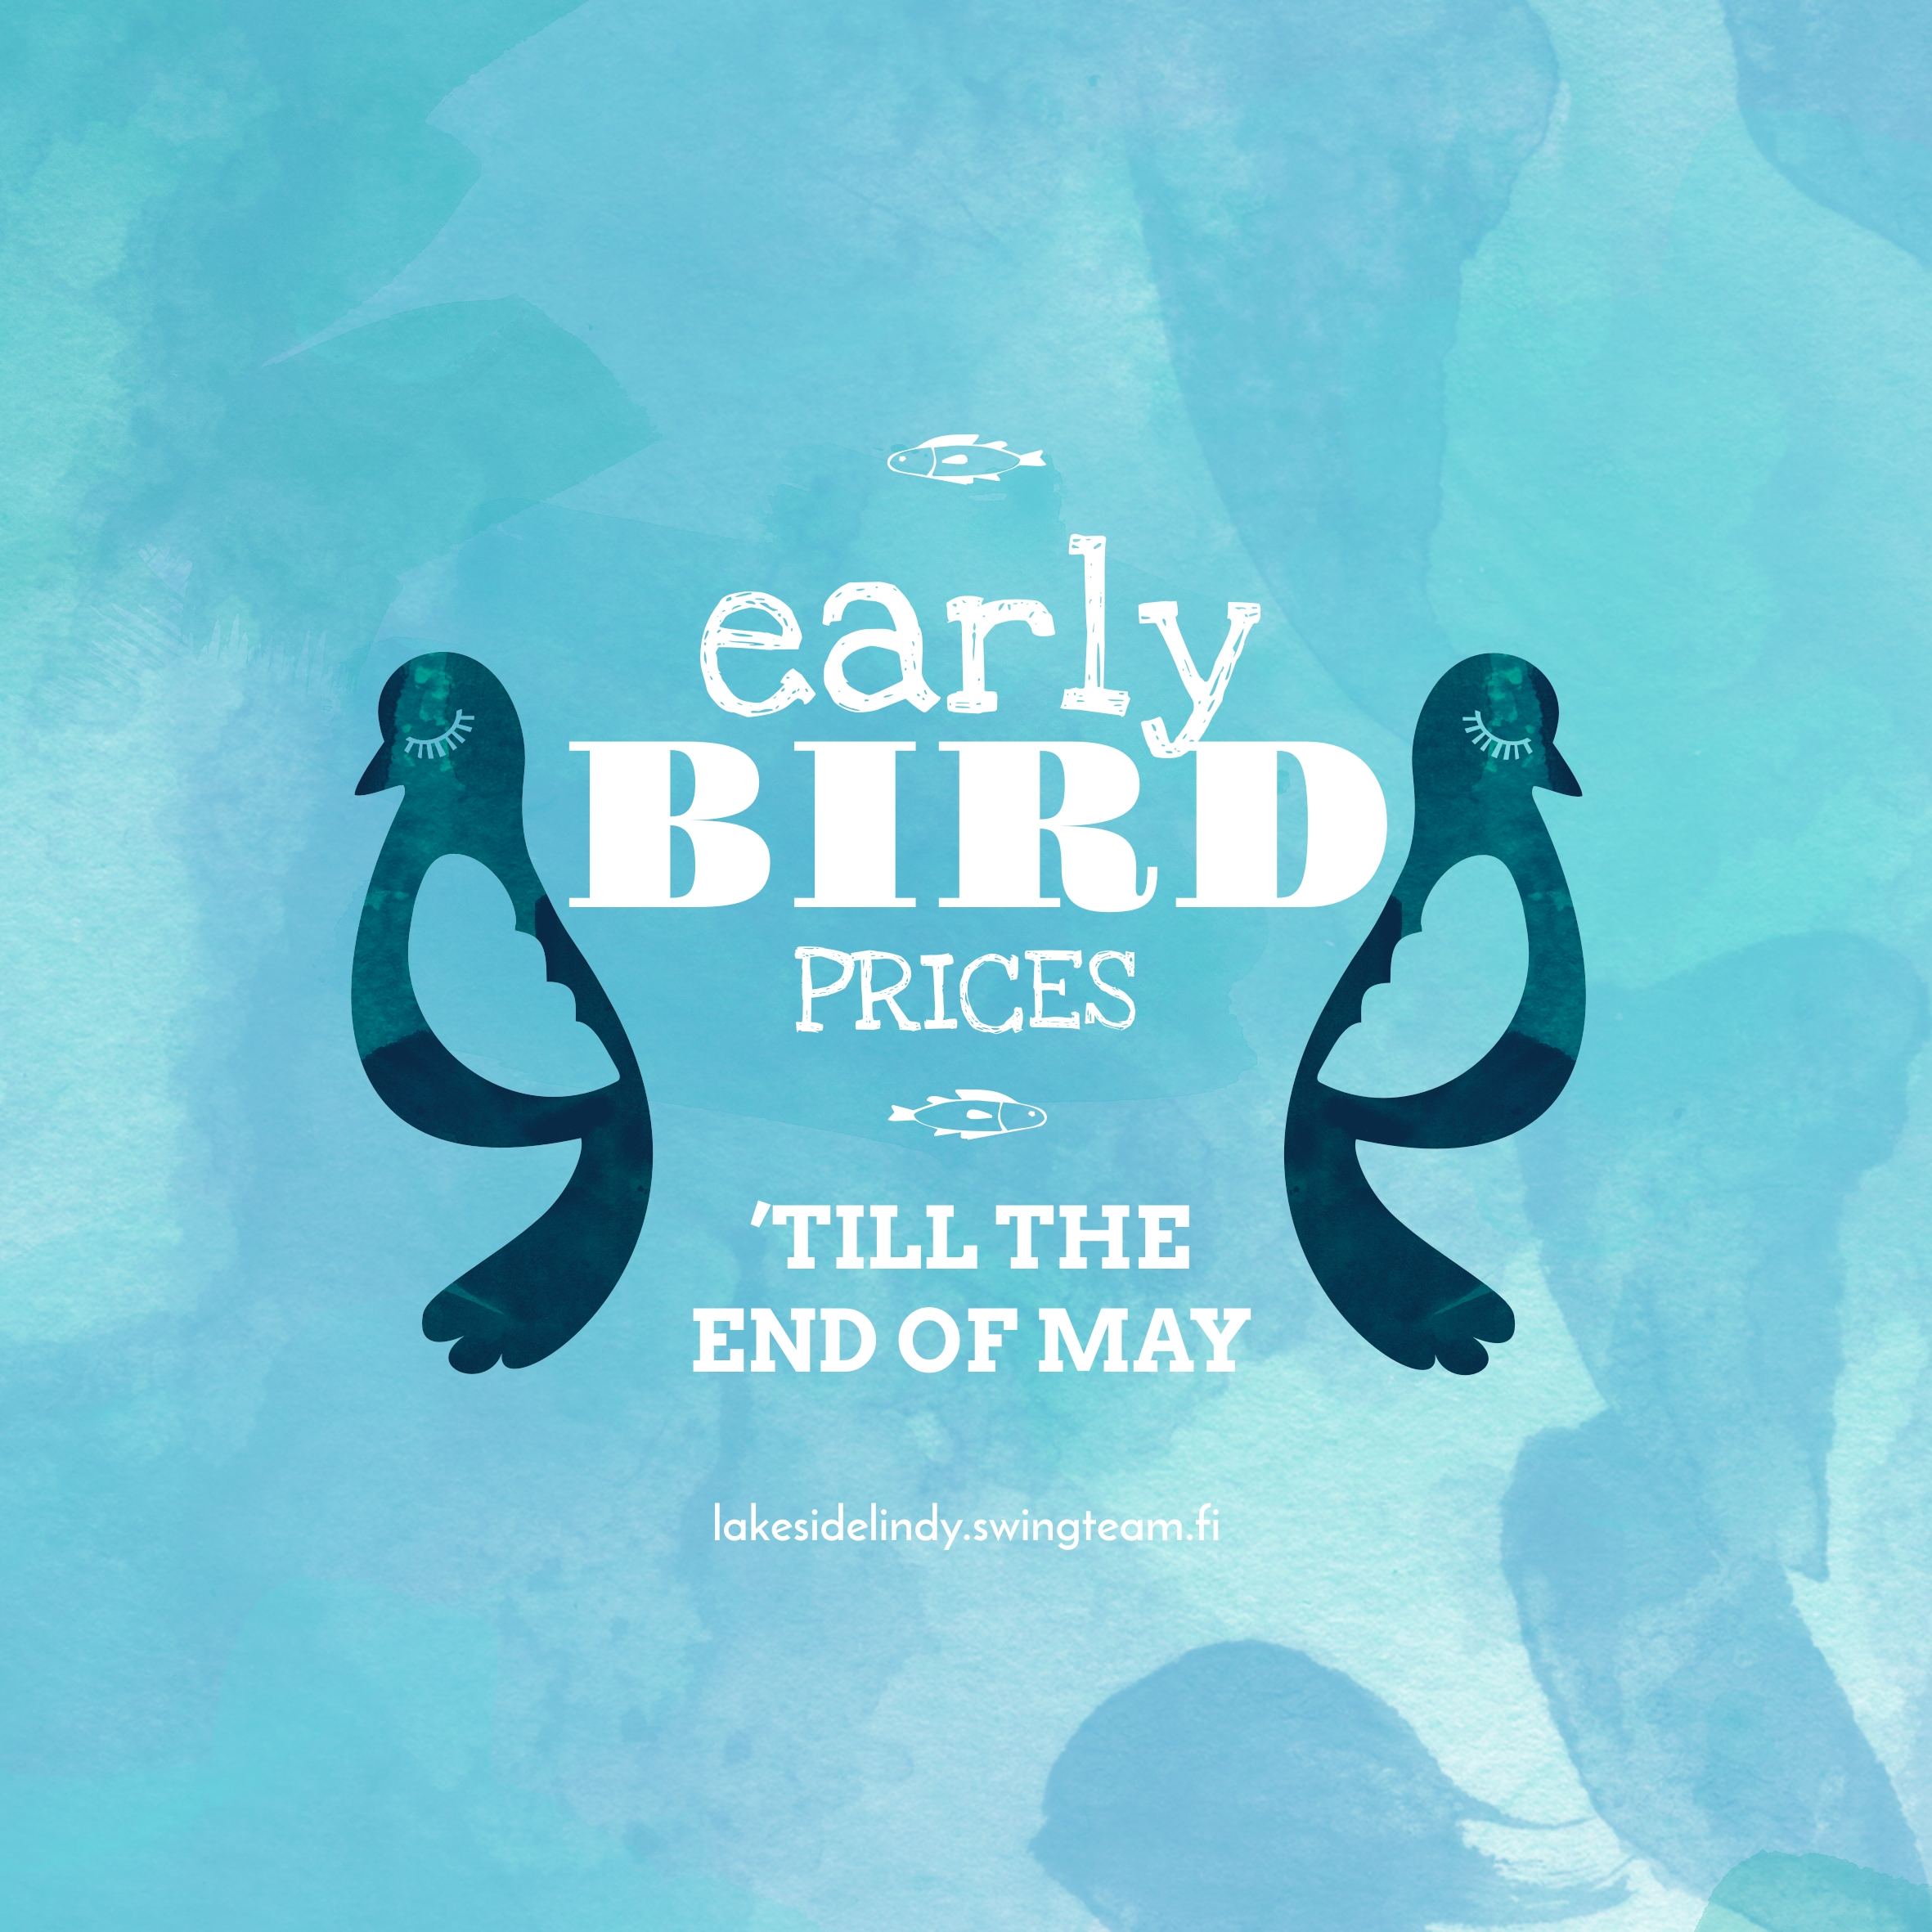 Last week with Early Bird prices!